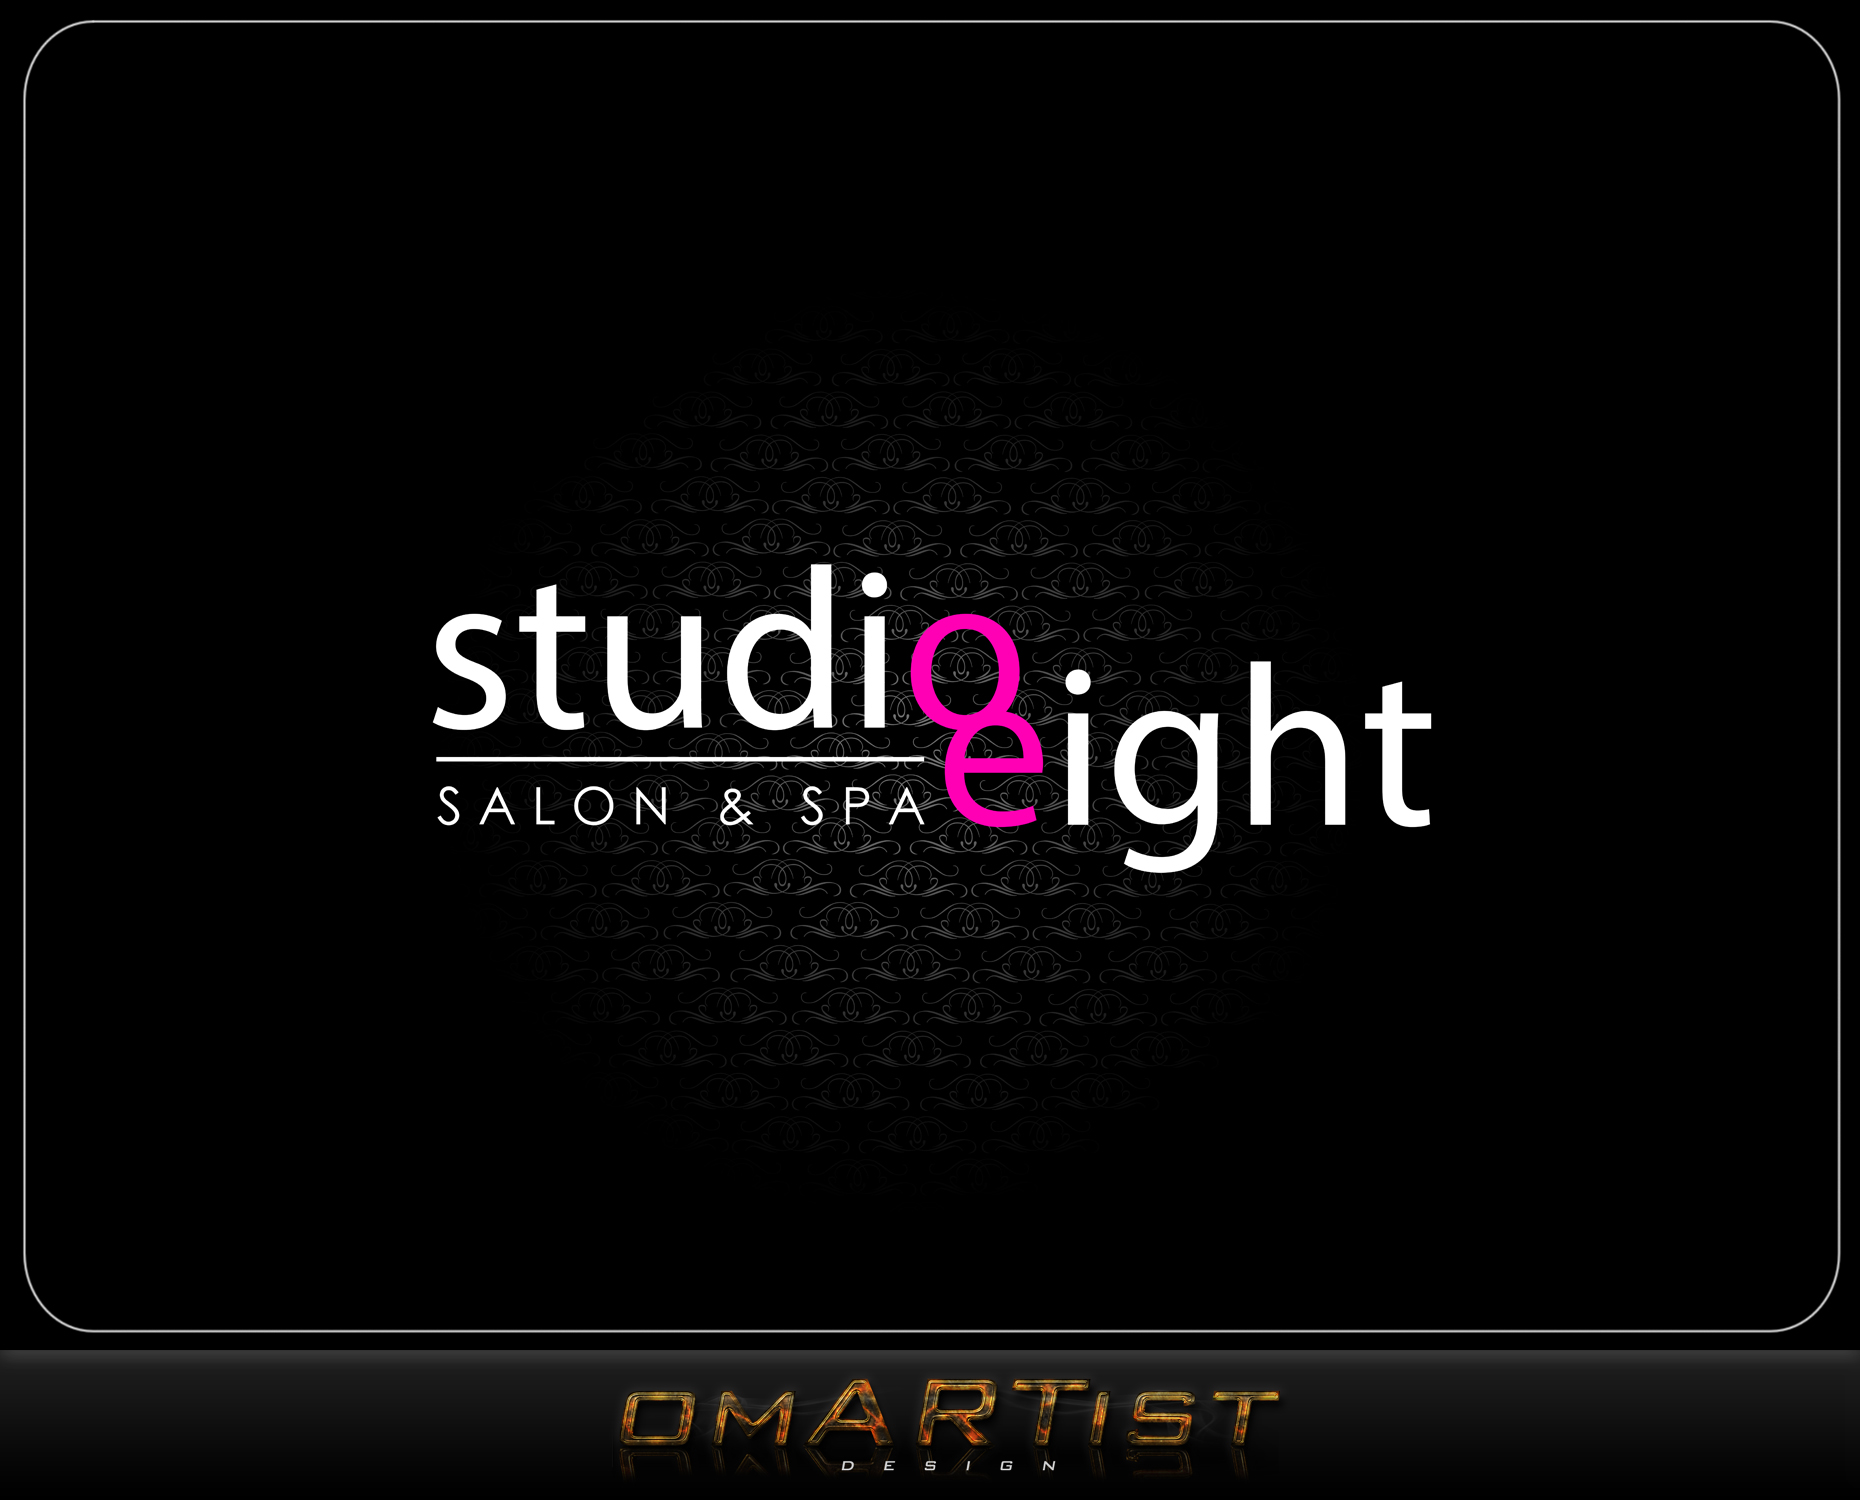 Logo Design by omARTist - Entry No. 94 in the Logo Design Contest Captivating Logo Design for studio eight salon & spa.